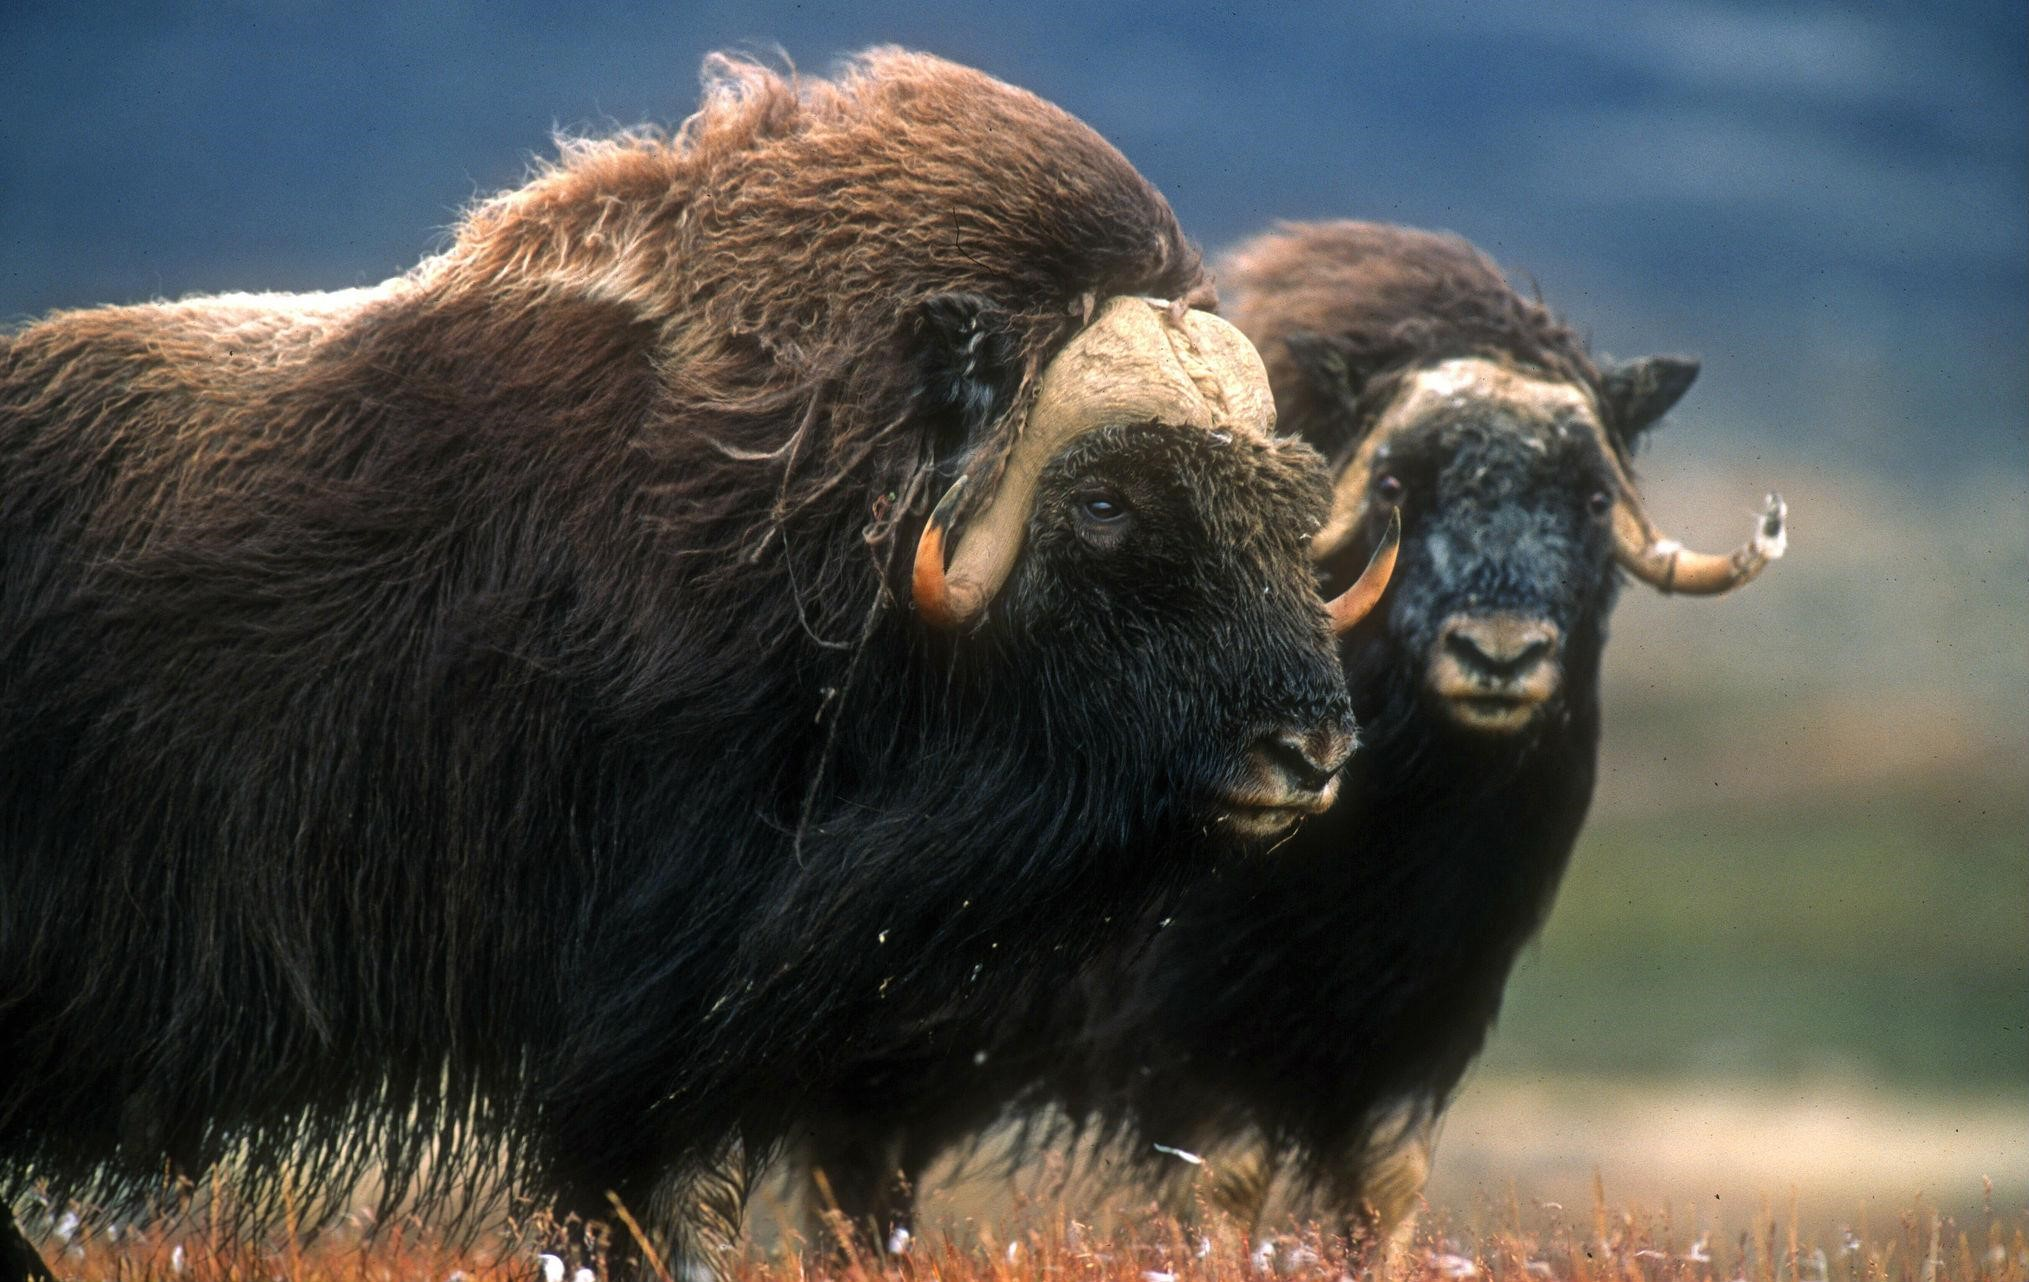 Greenland's muskoxen are a fantastic find for wildlife lovers and photographers.